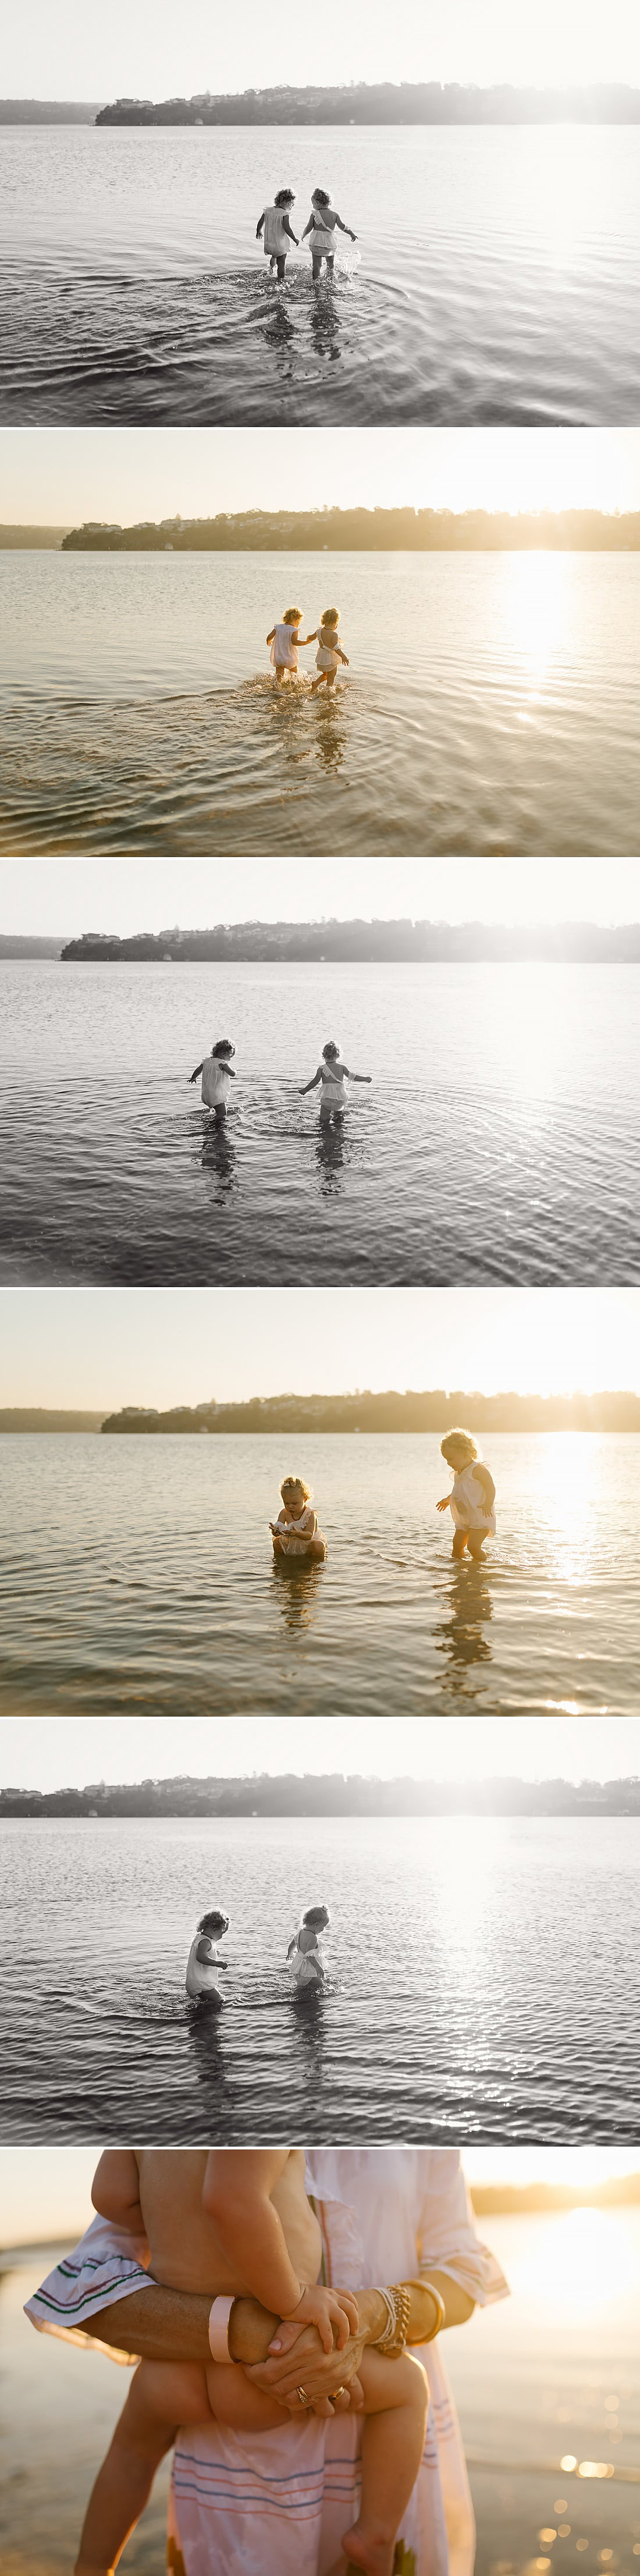 Natural-family-photography-sydney-sutherland-shire